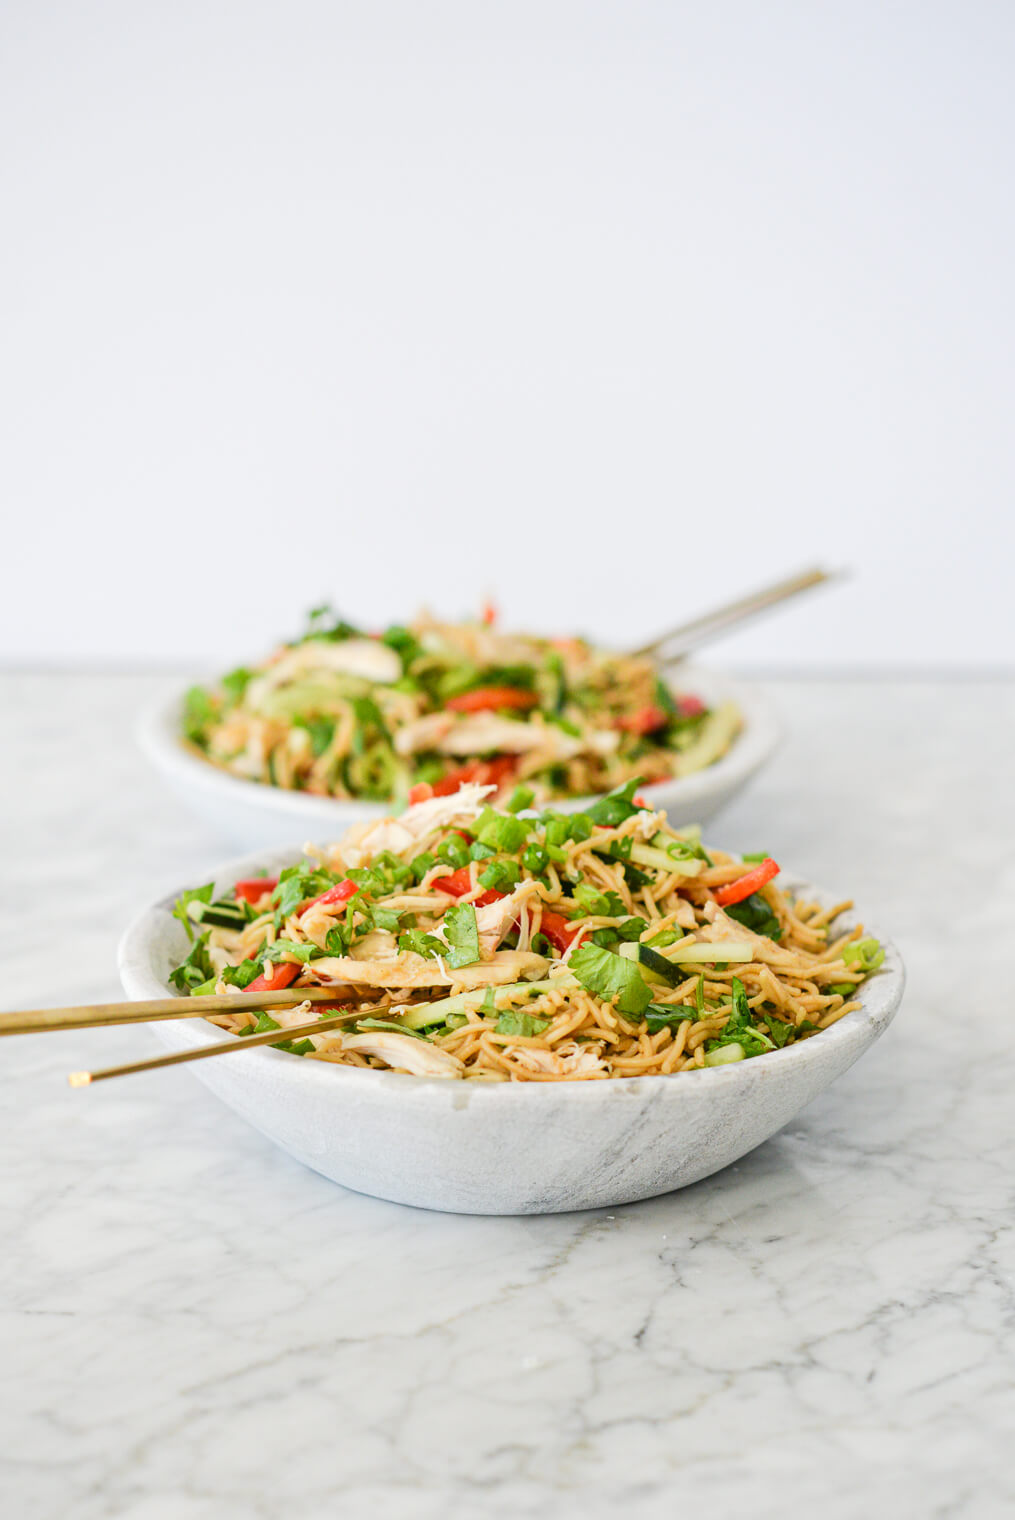 side view of two bowls of sesame noodles with raw strips of cucumber, red bell peppers, and snap peas in a stone bowl with gold chopsticks resting on the rim all on a marble surface